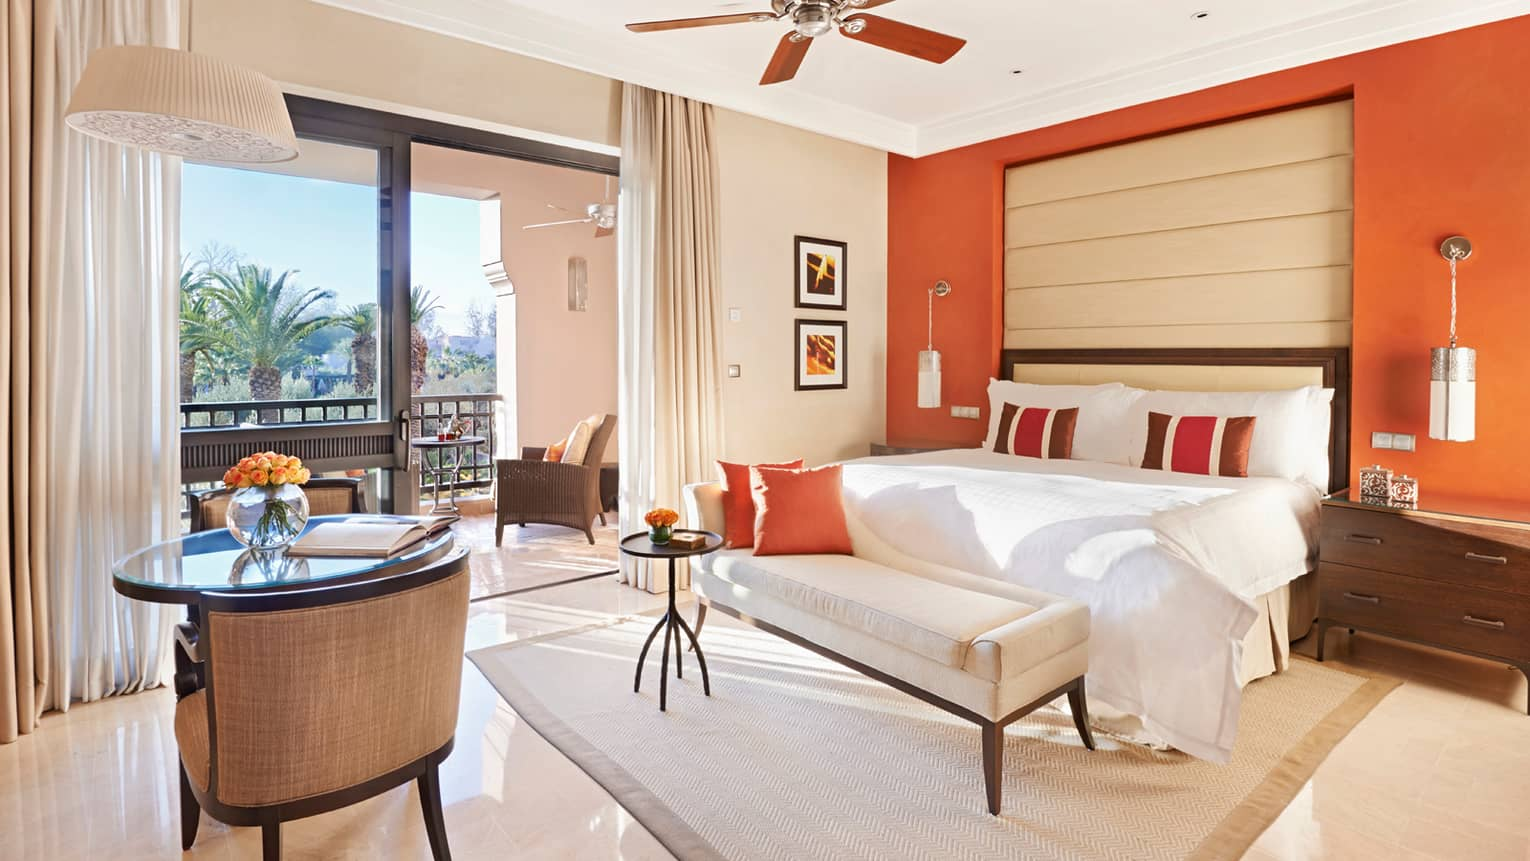 Garden-View Terrace Room with orange wall, white tile floors, fan above bed, large patio door